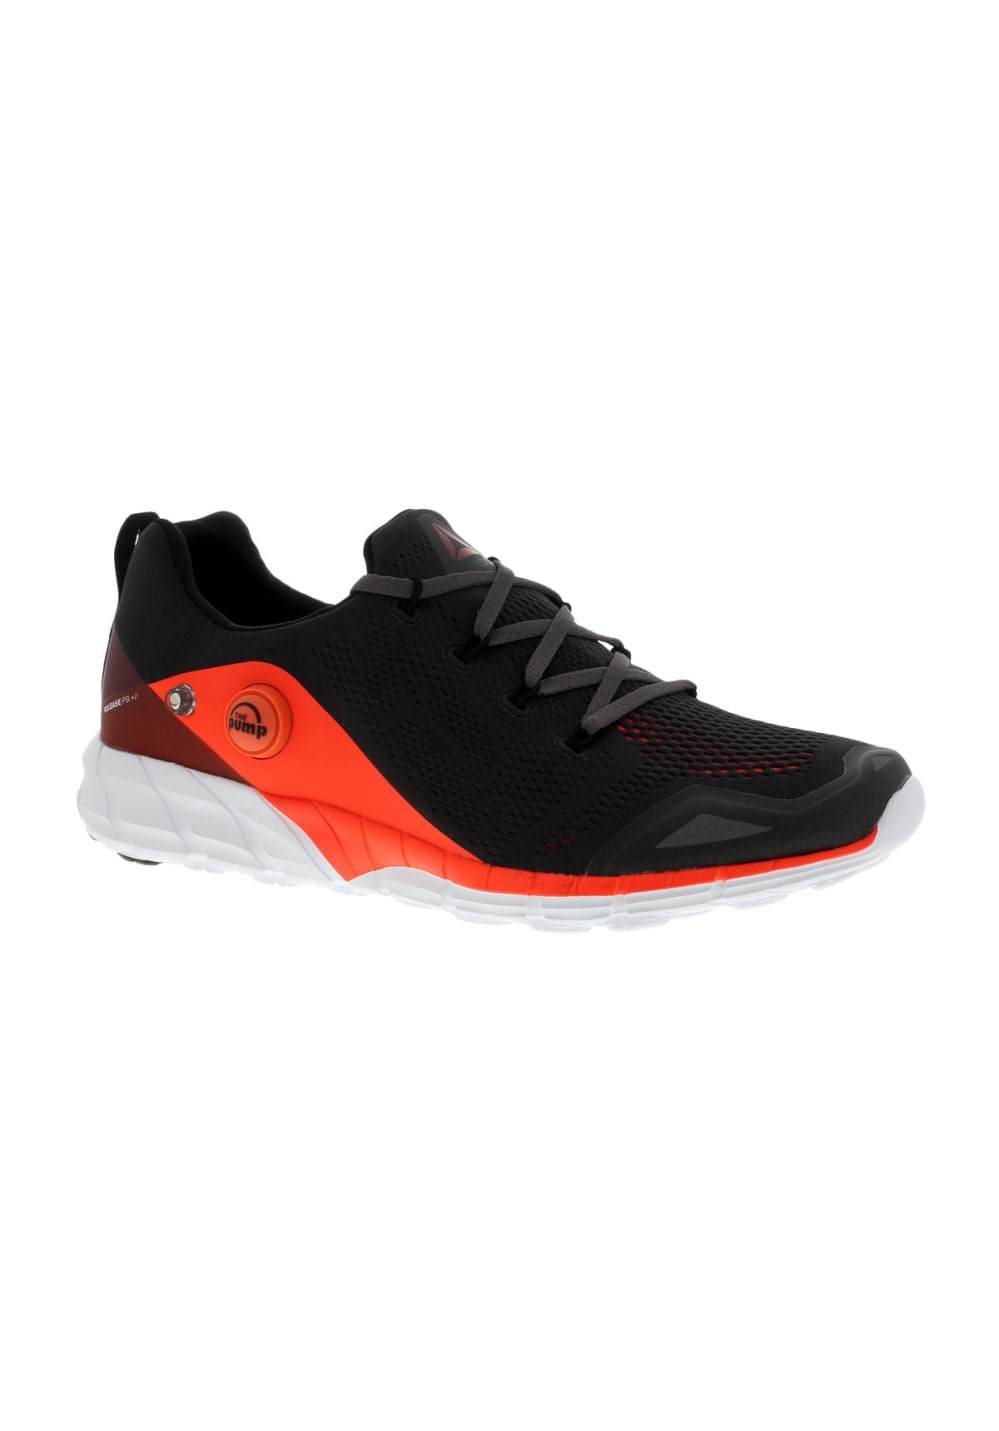 60e8a1276 Next. -60%. Reebok. ZPump Fusion 2.0 Knit - Running shoes for Women